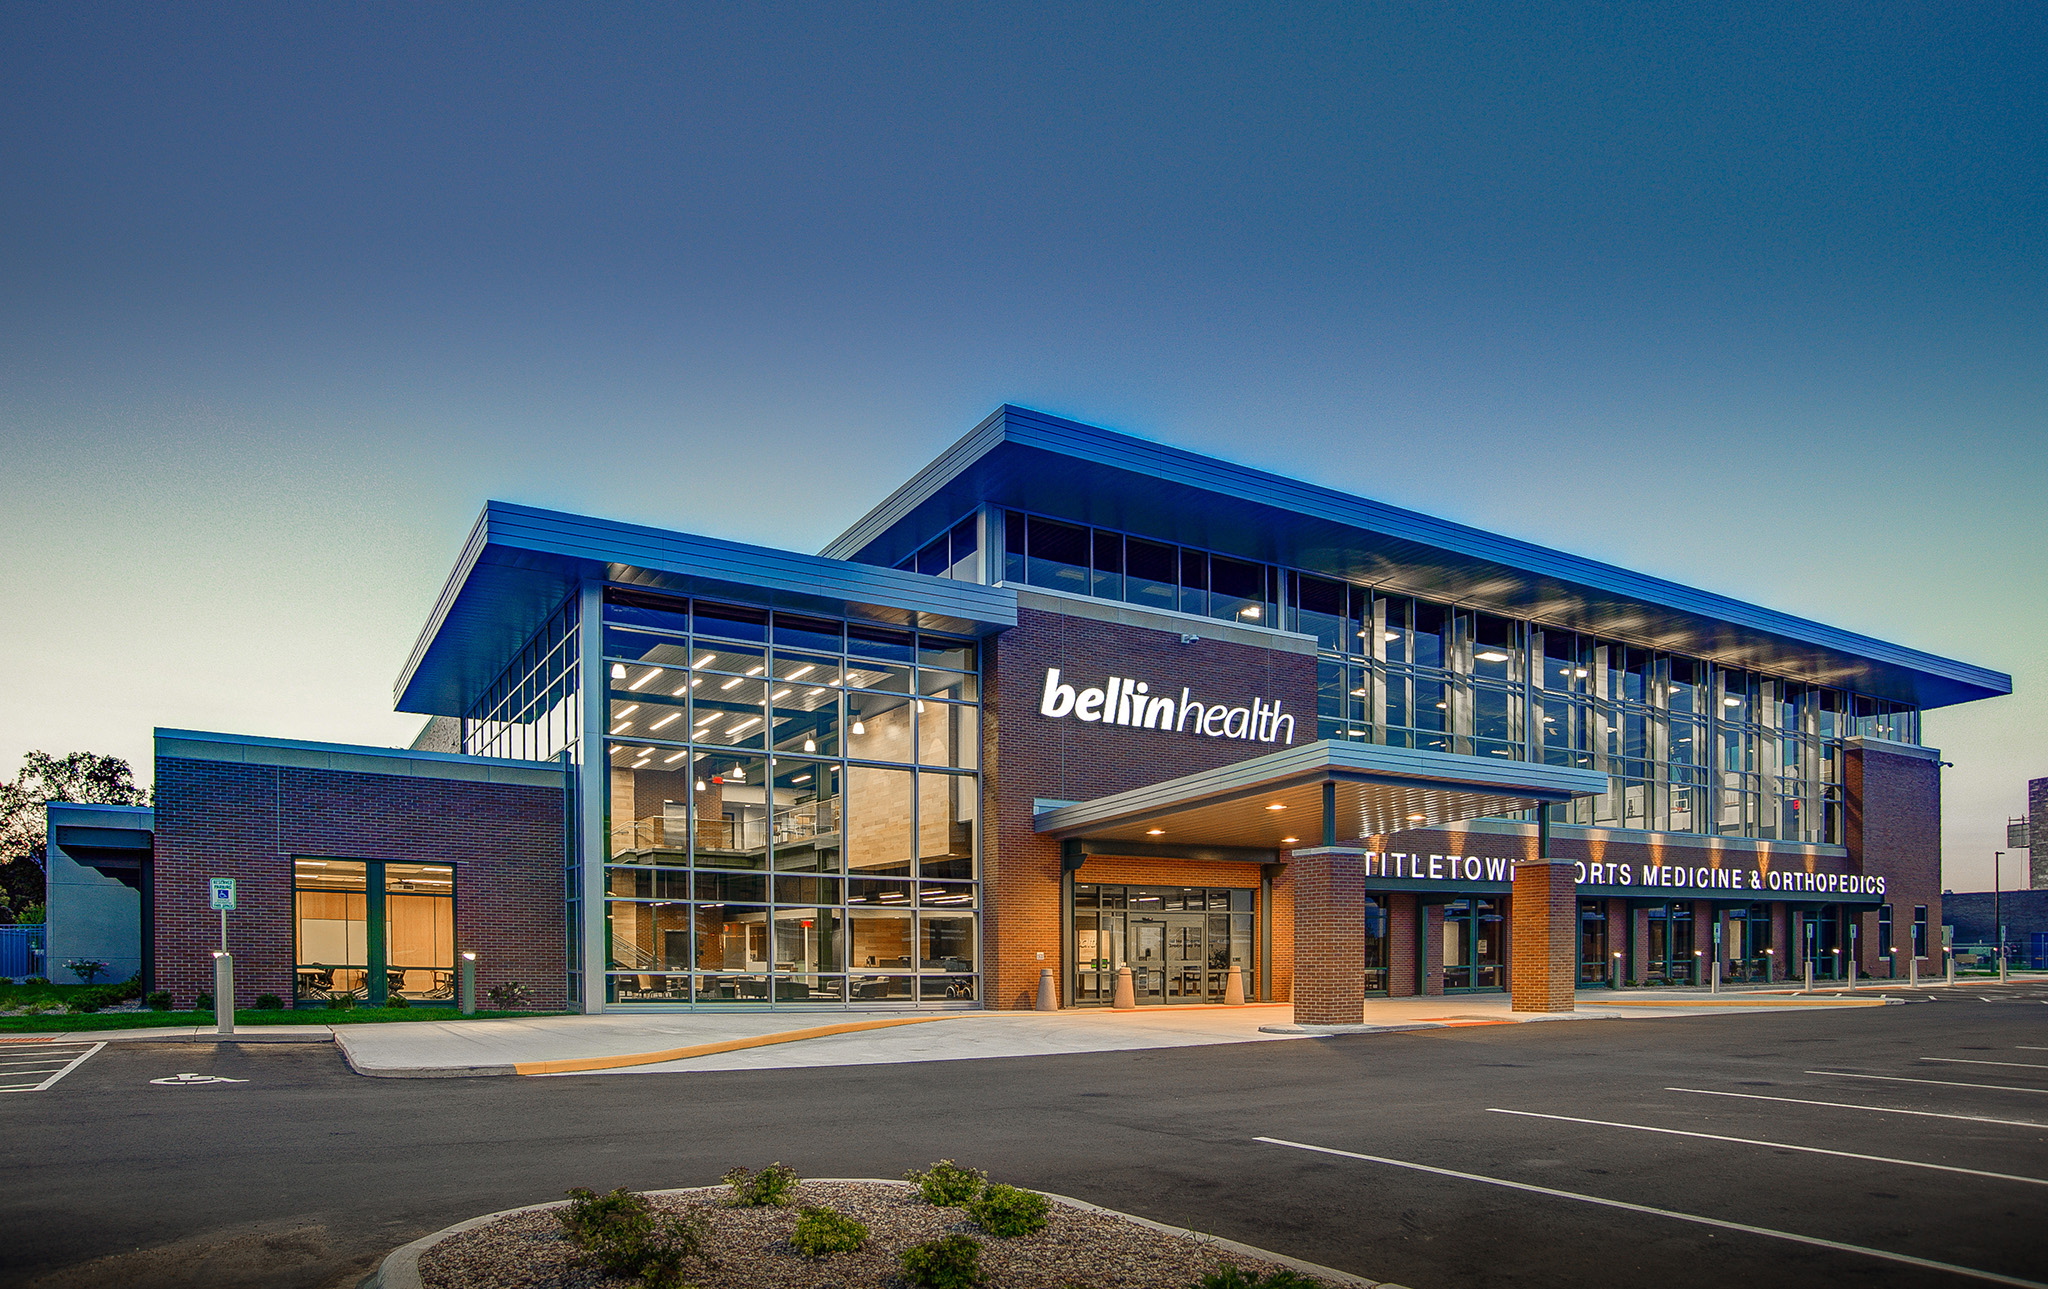 23_Bellin-Titletown-Sports-Medicine-Orthopedics